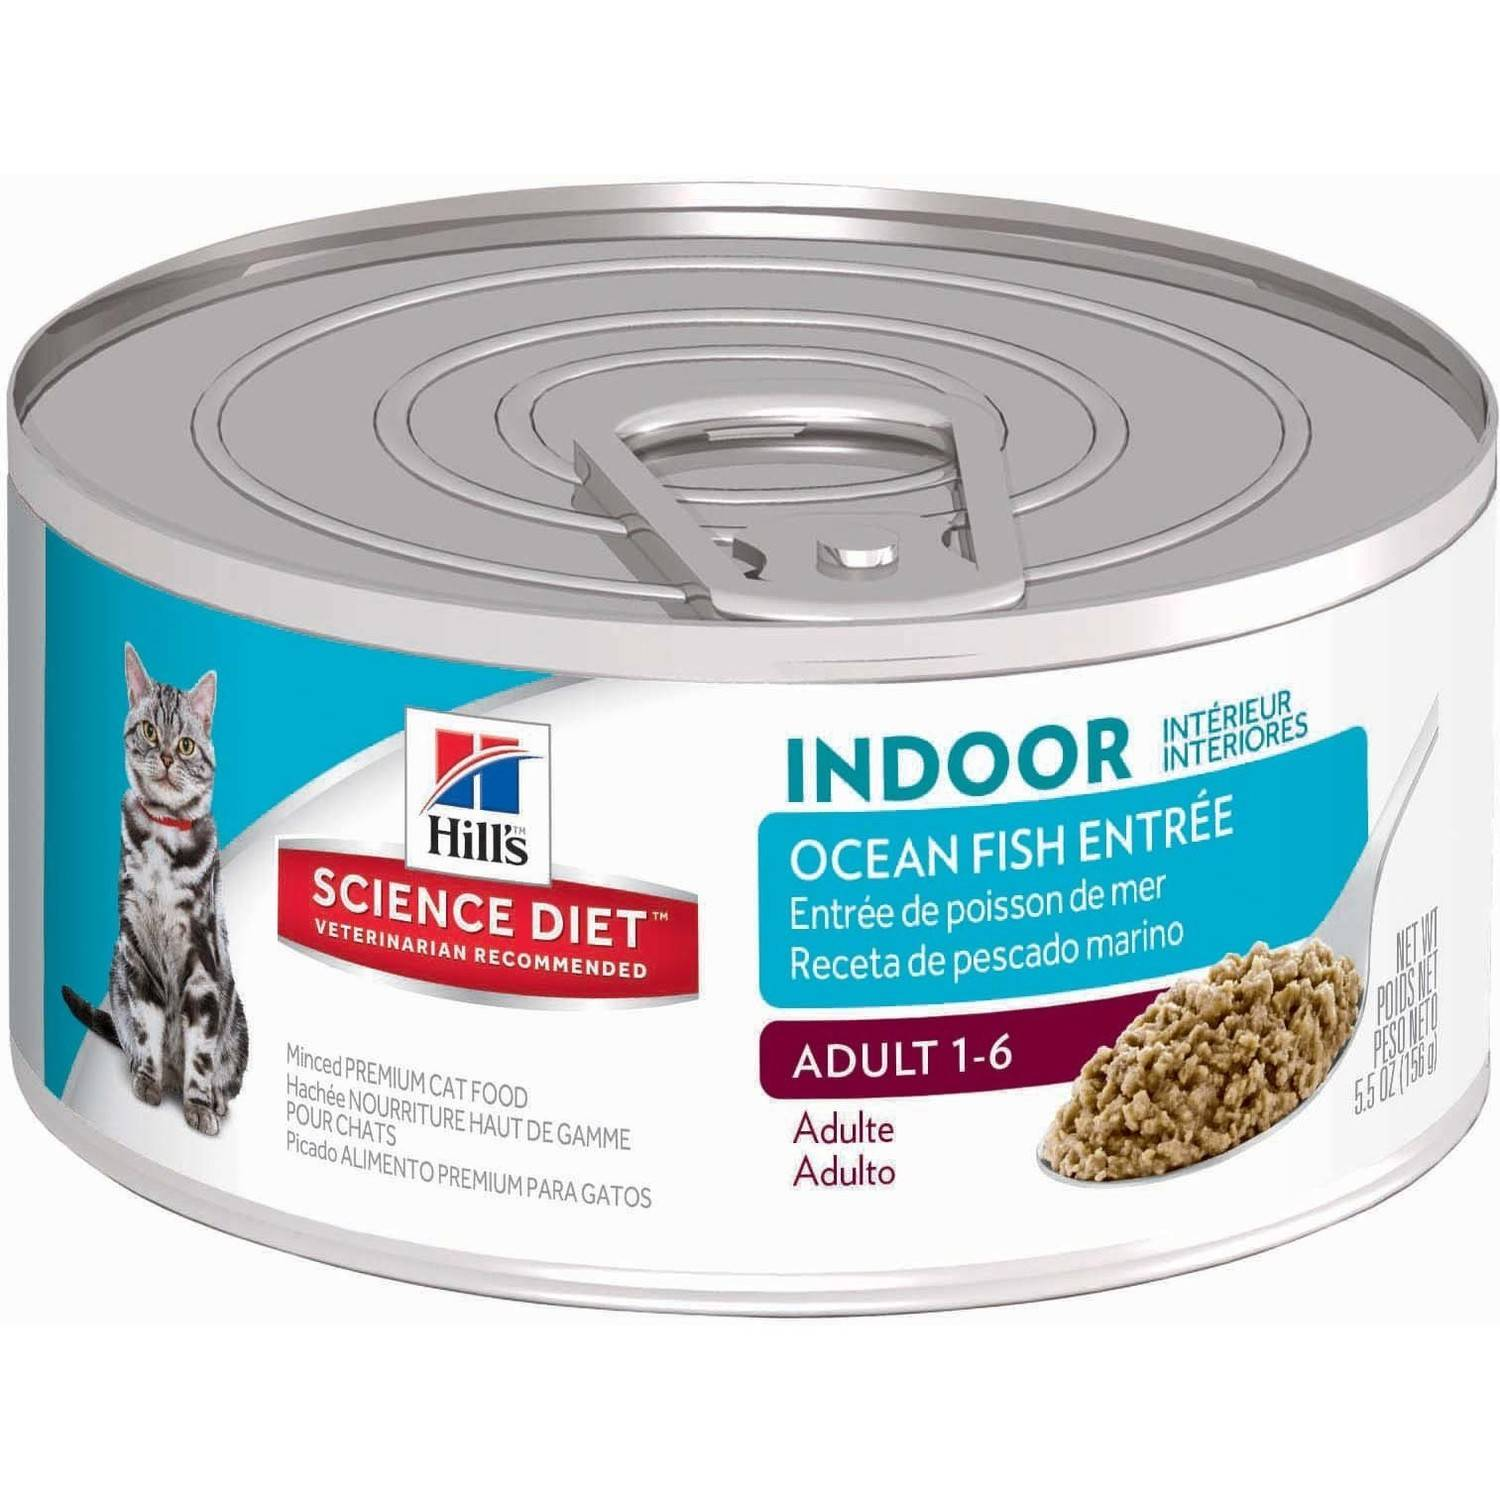 Hill's Science Diet (Get $5 back for every $20 spent) Adult Indoor Ocean Fish Entrée Canned Cat Food, 5.5 oz, 24-pack